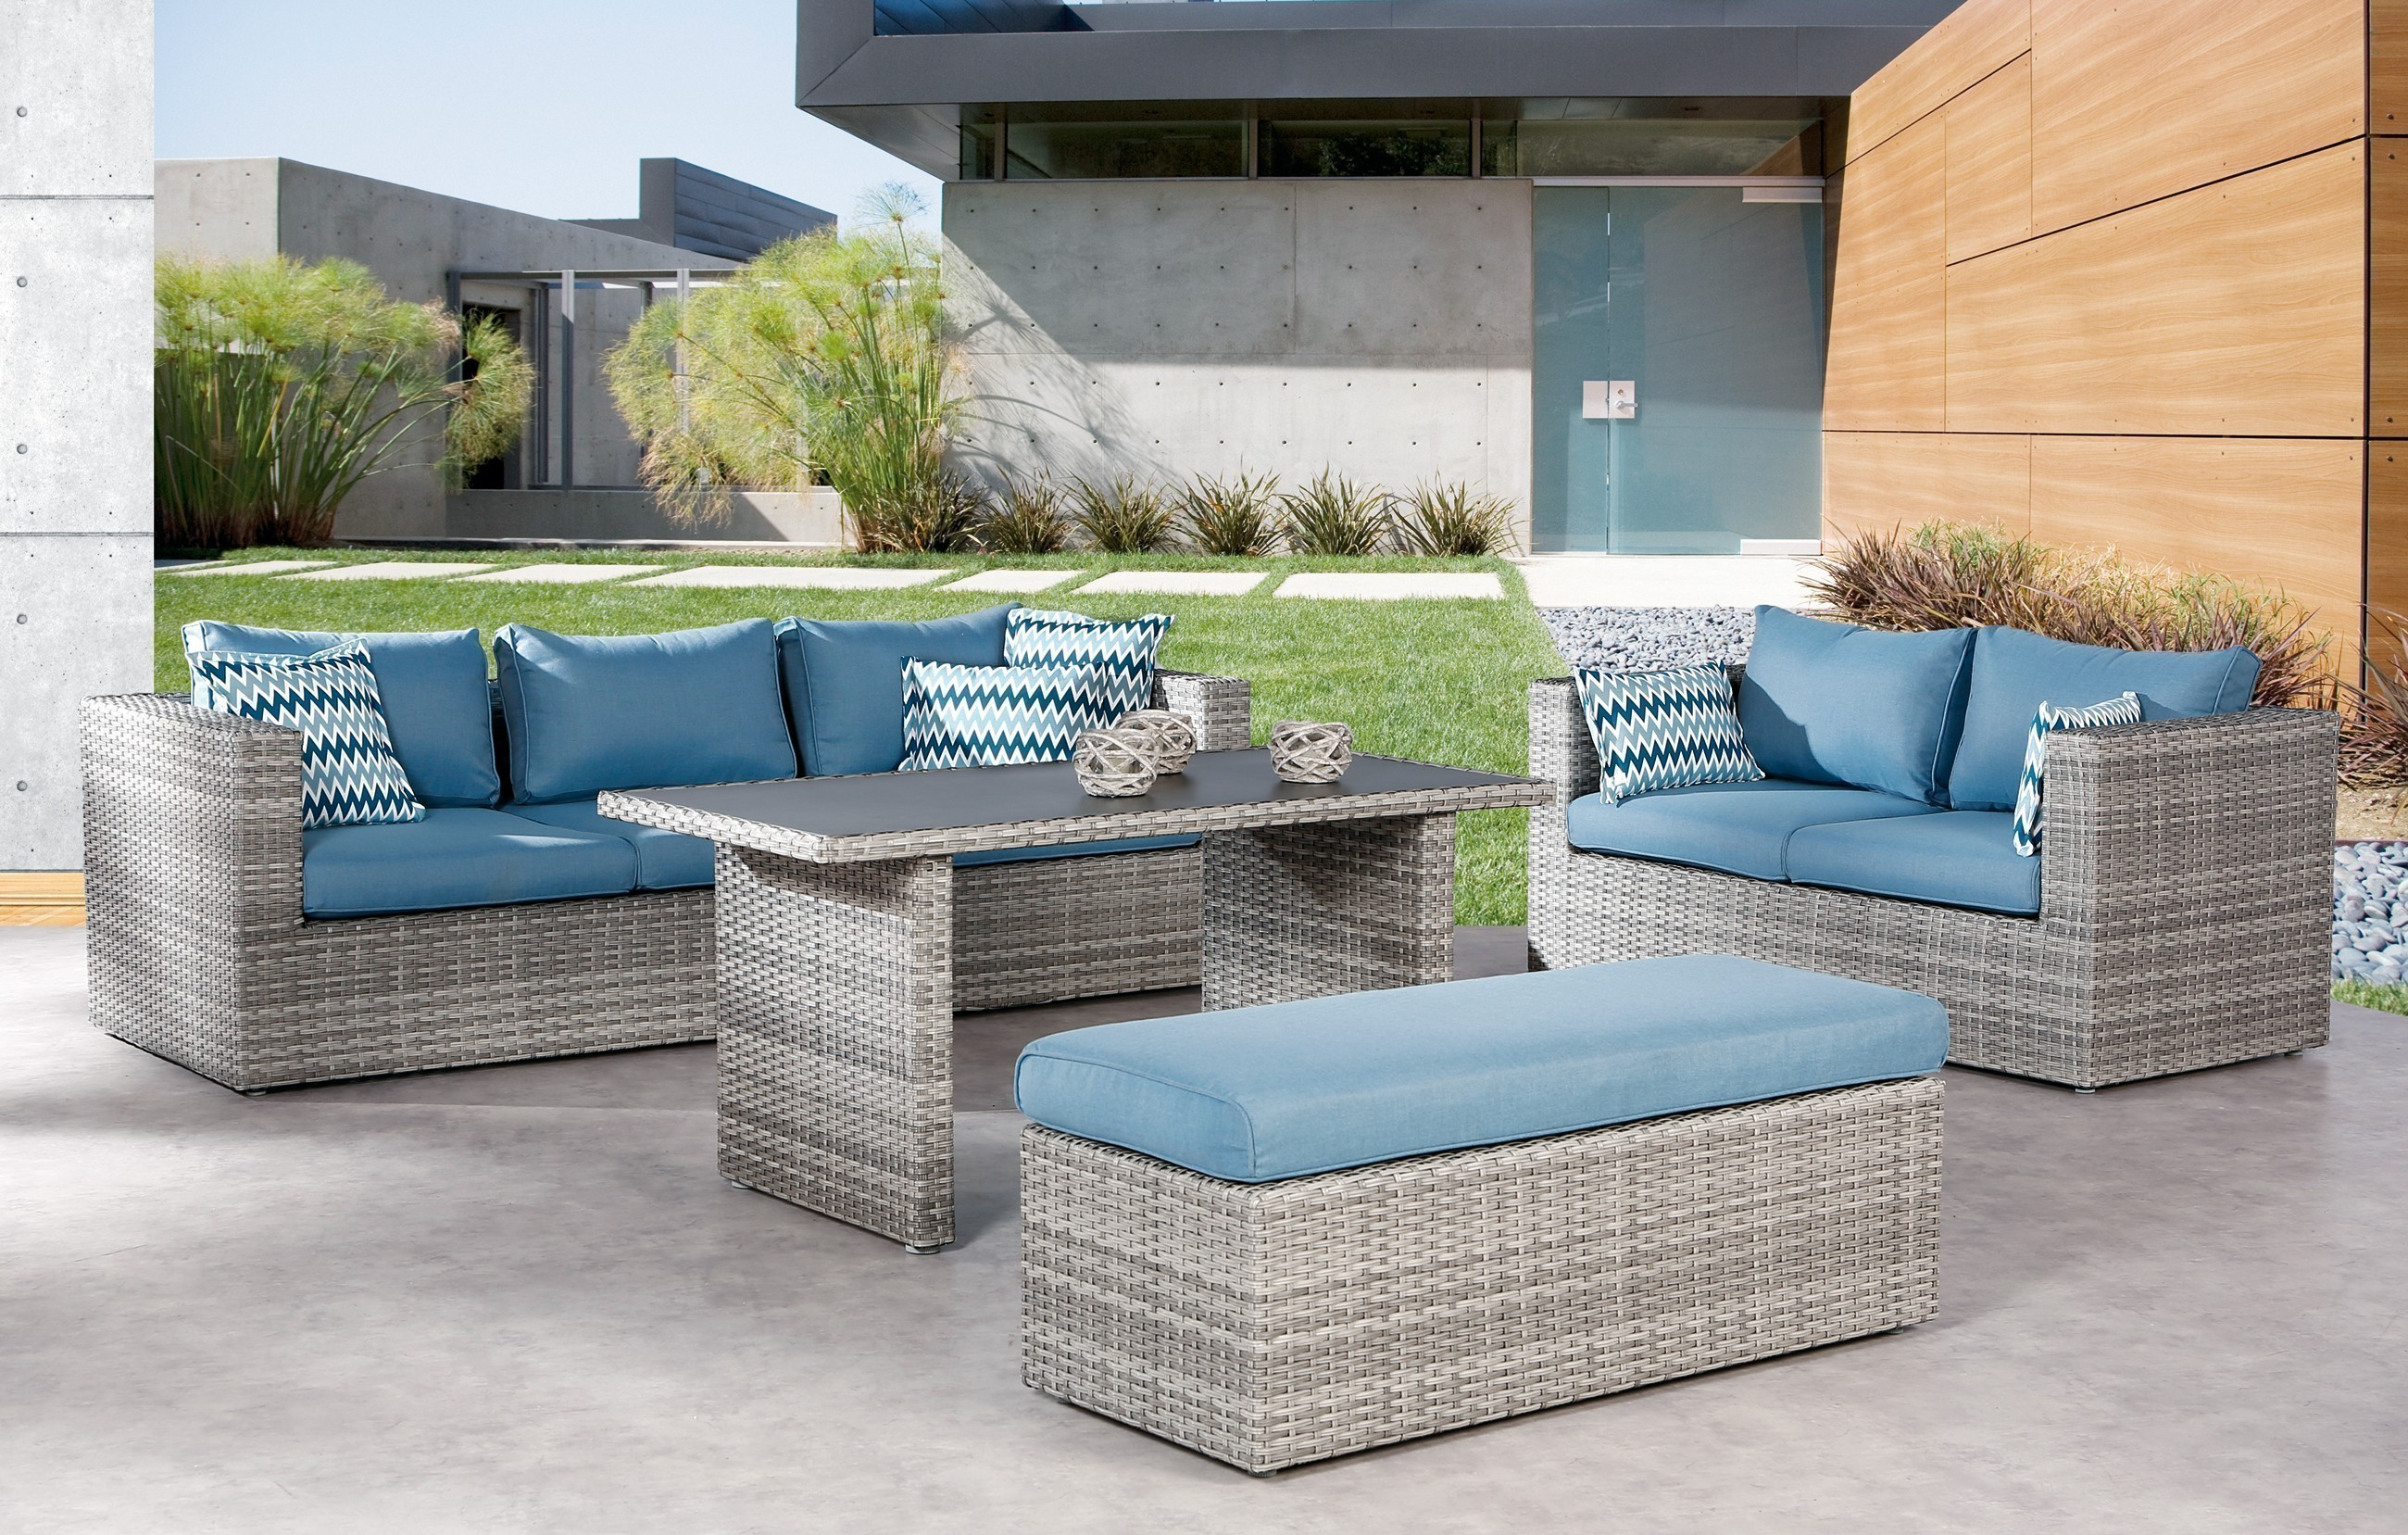 gartenm bel lounge m bel set curacao best polyrattan grau blau bei. Black Bedroom Furniture Sets. Home Design Ideas